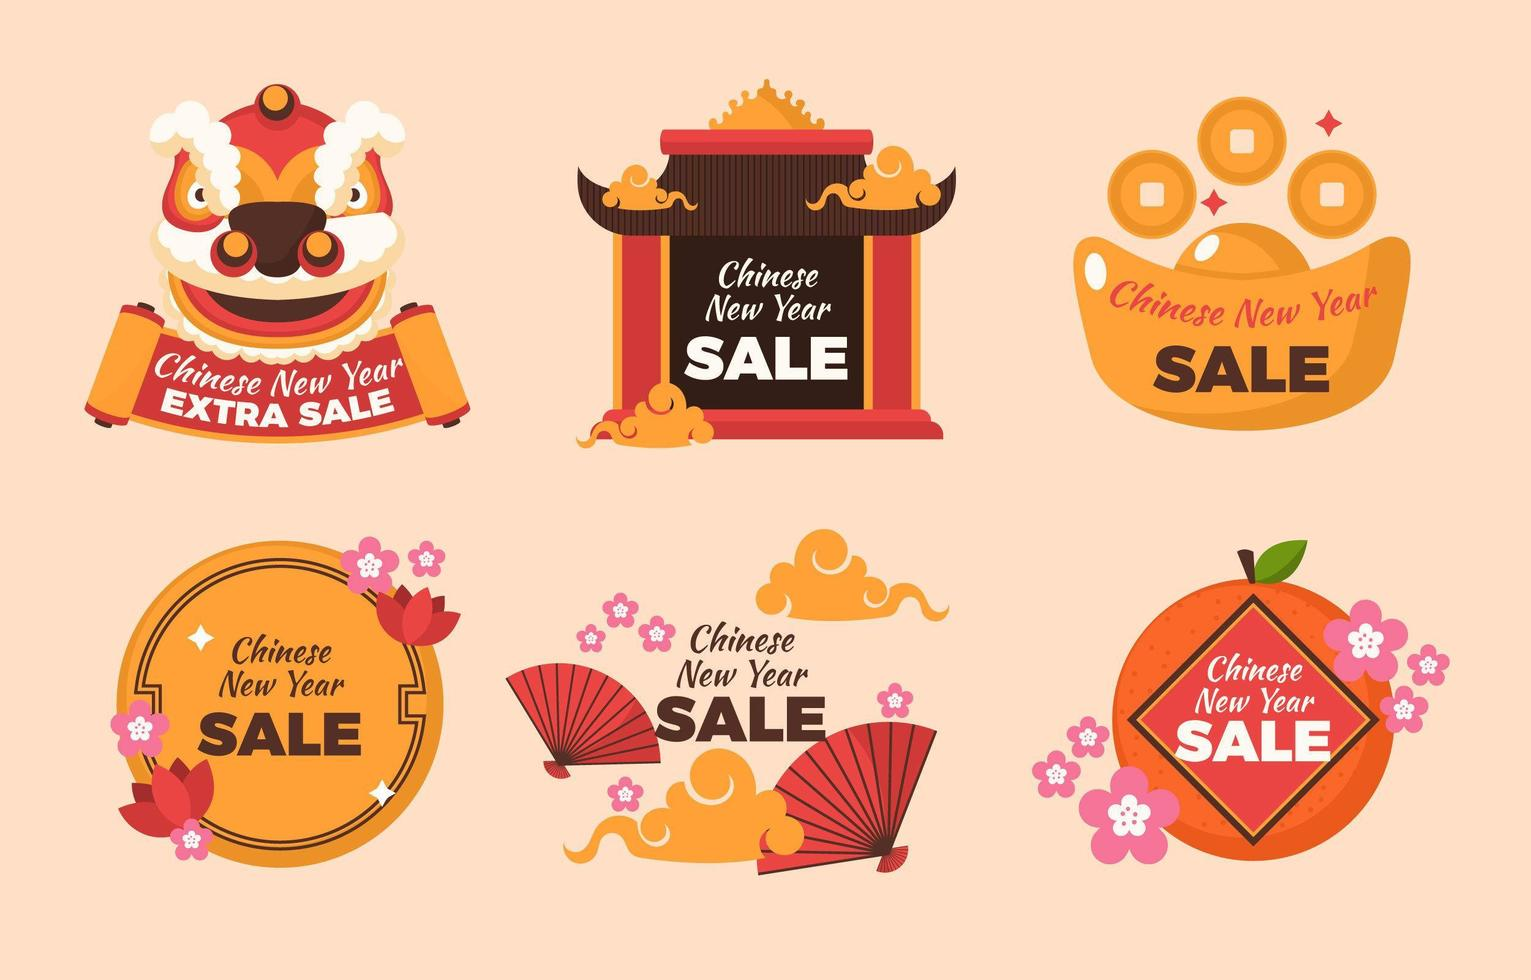 Chinese New Year Festival Themed Sale vector